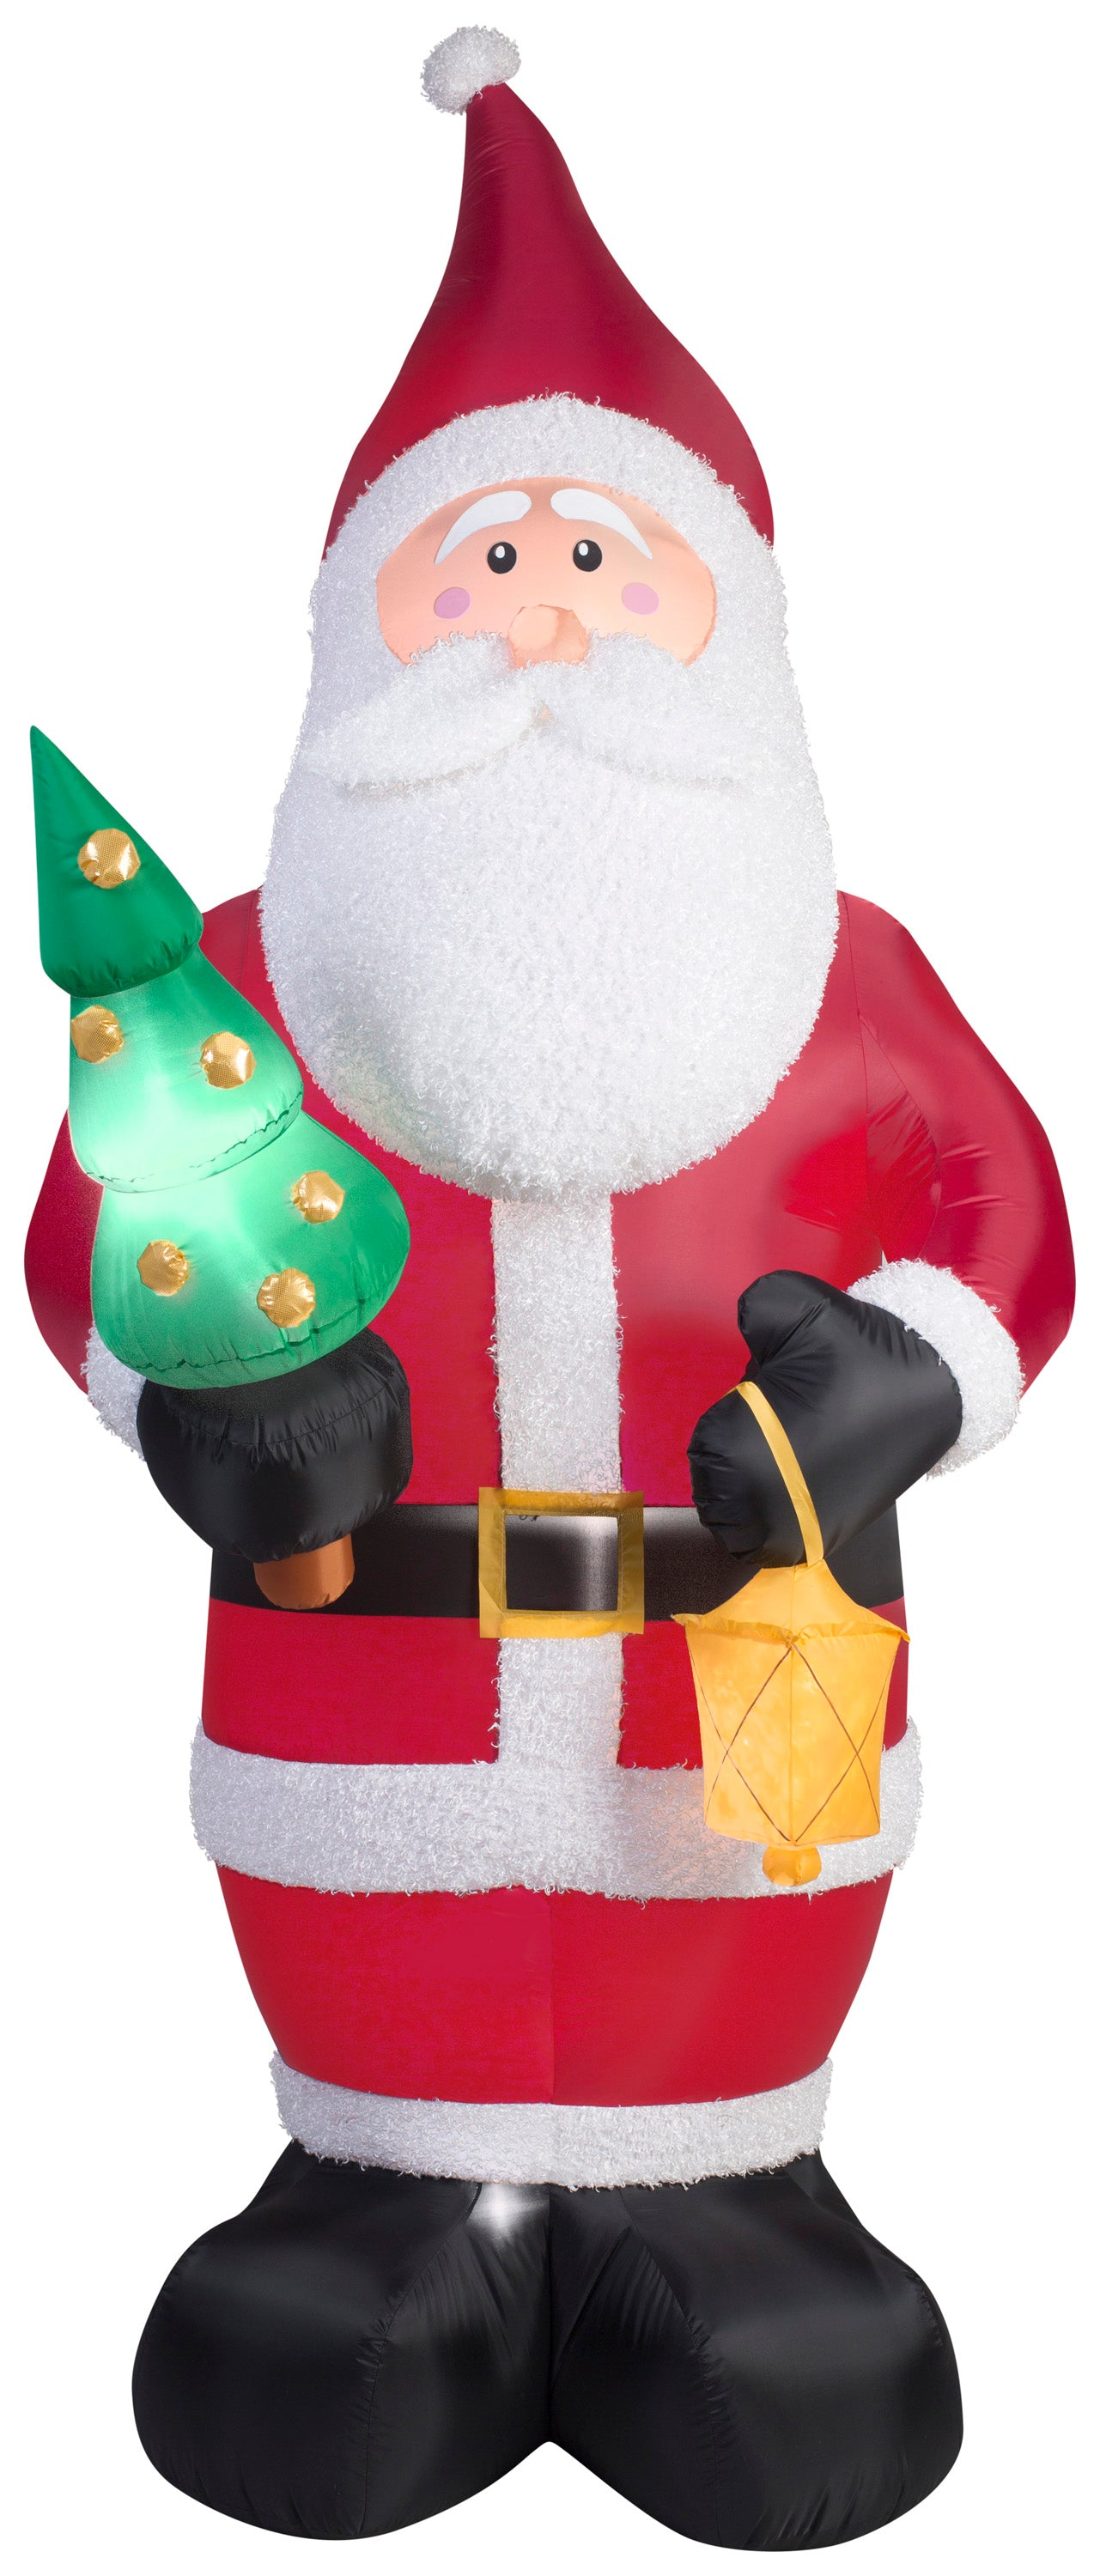 9.5' Airblown Kaleidoscope Mixed Media Santa Claus Christmas Inflatable